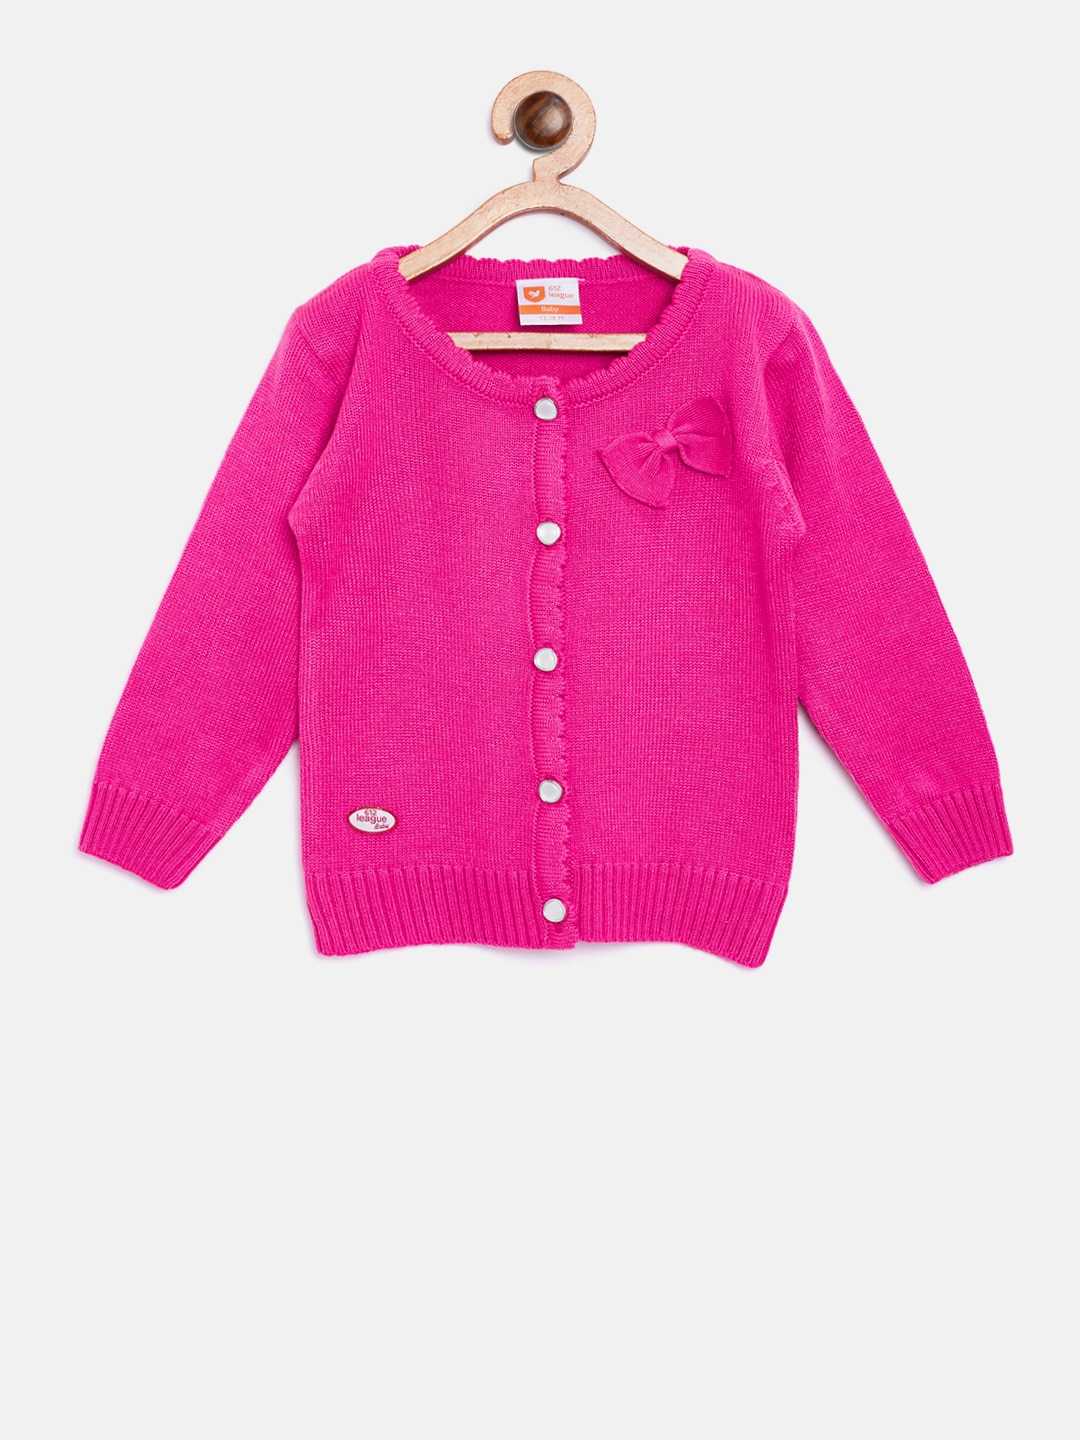 92306f6f5 Girl s Sweaters - Buy Sweaters for Girls Online in India